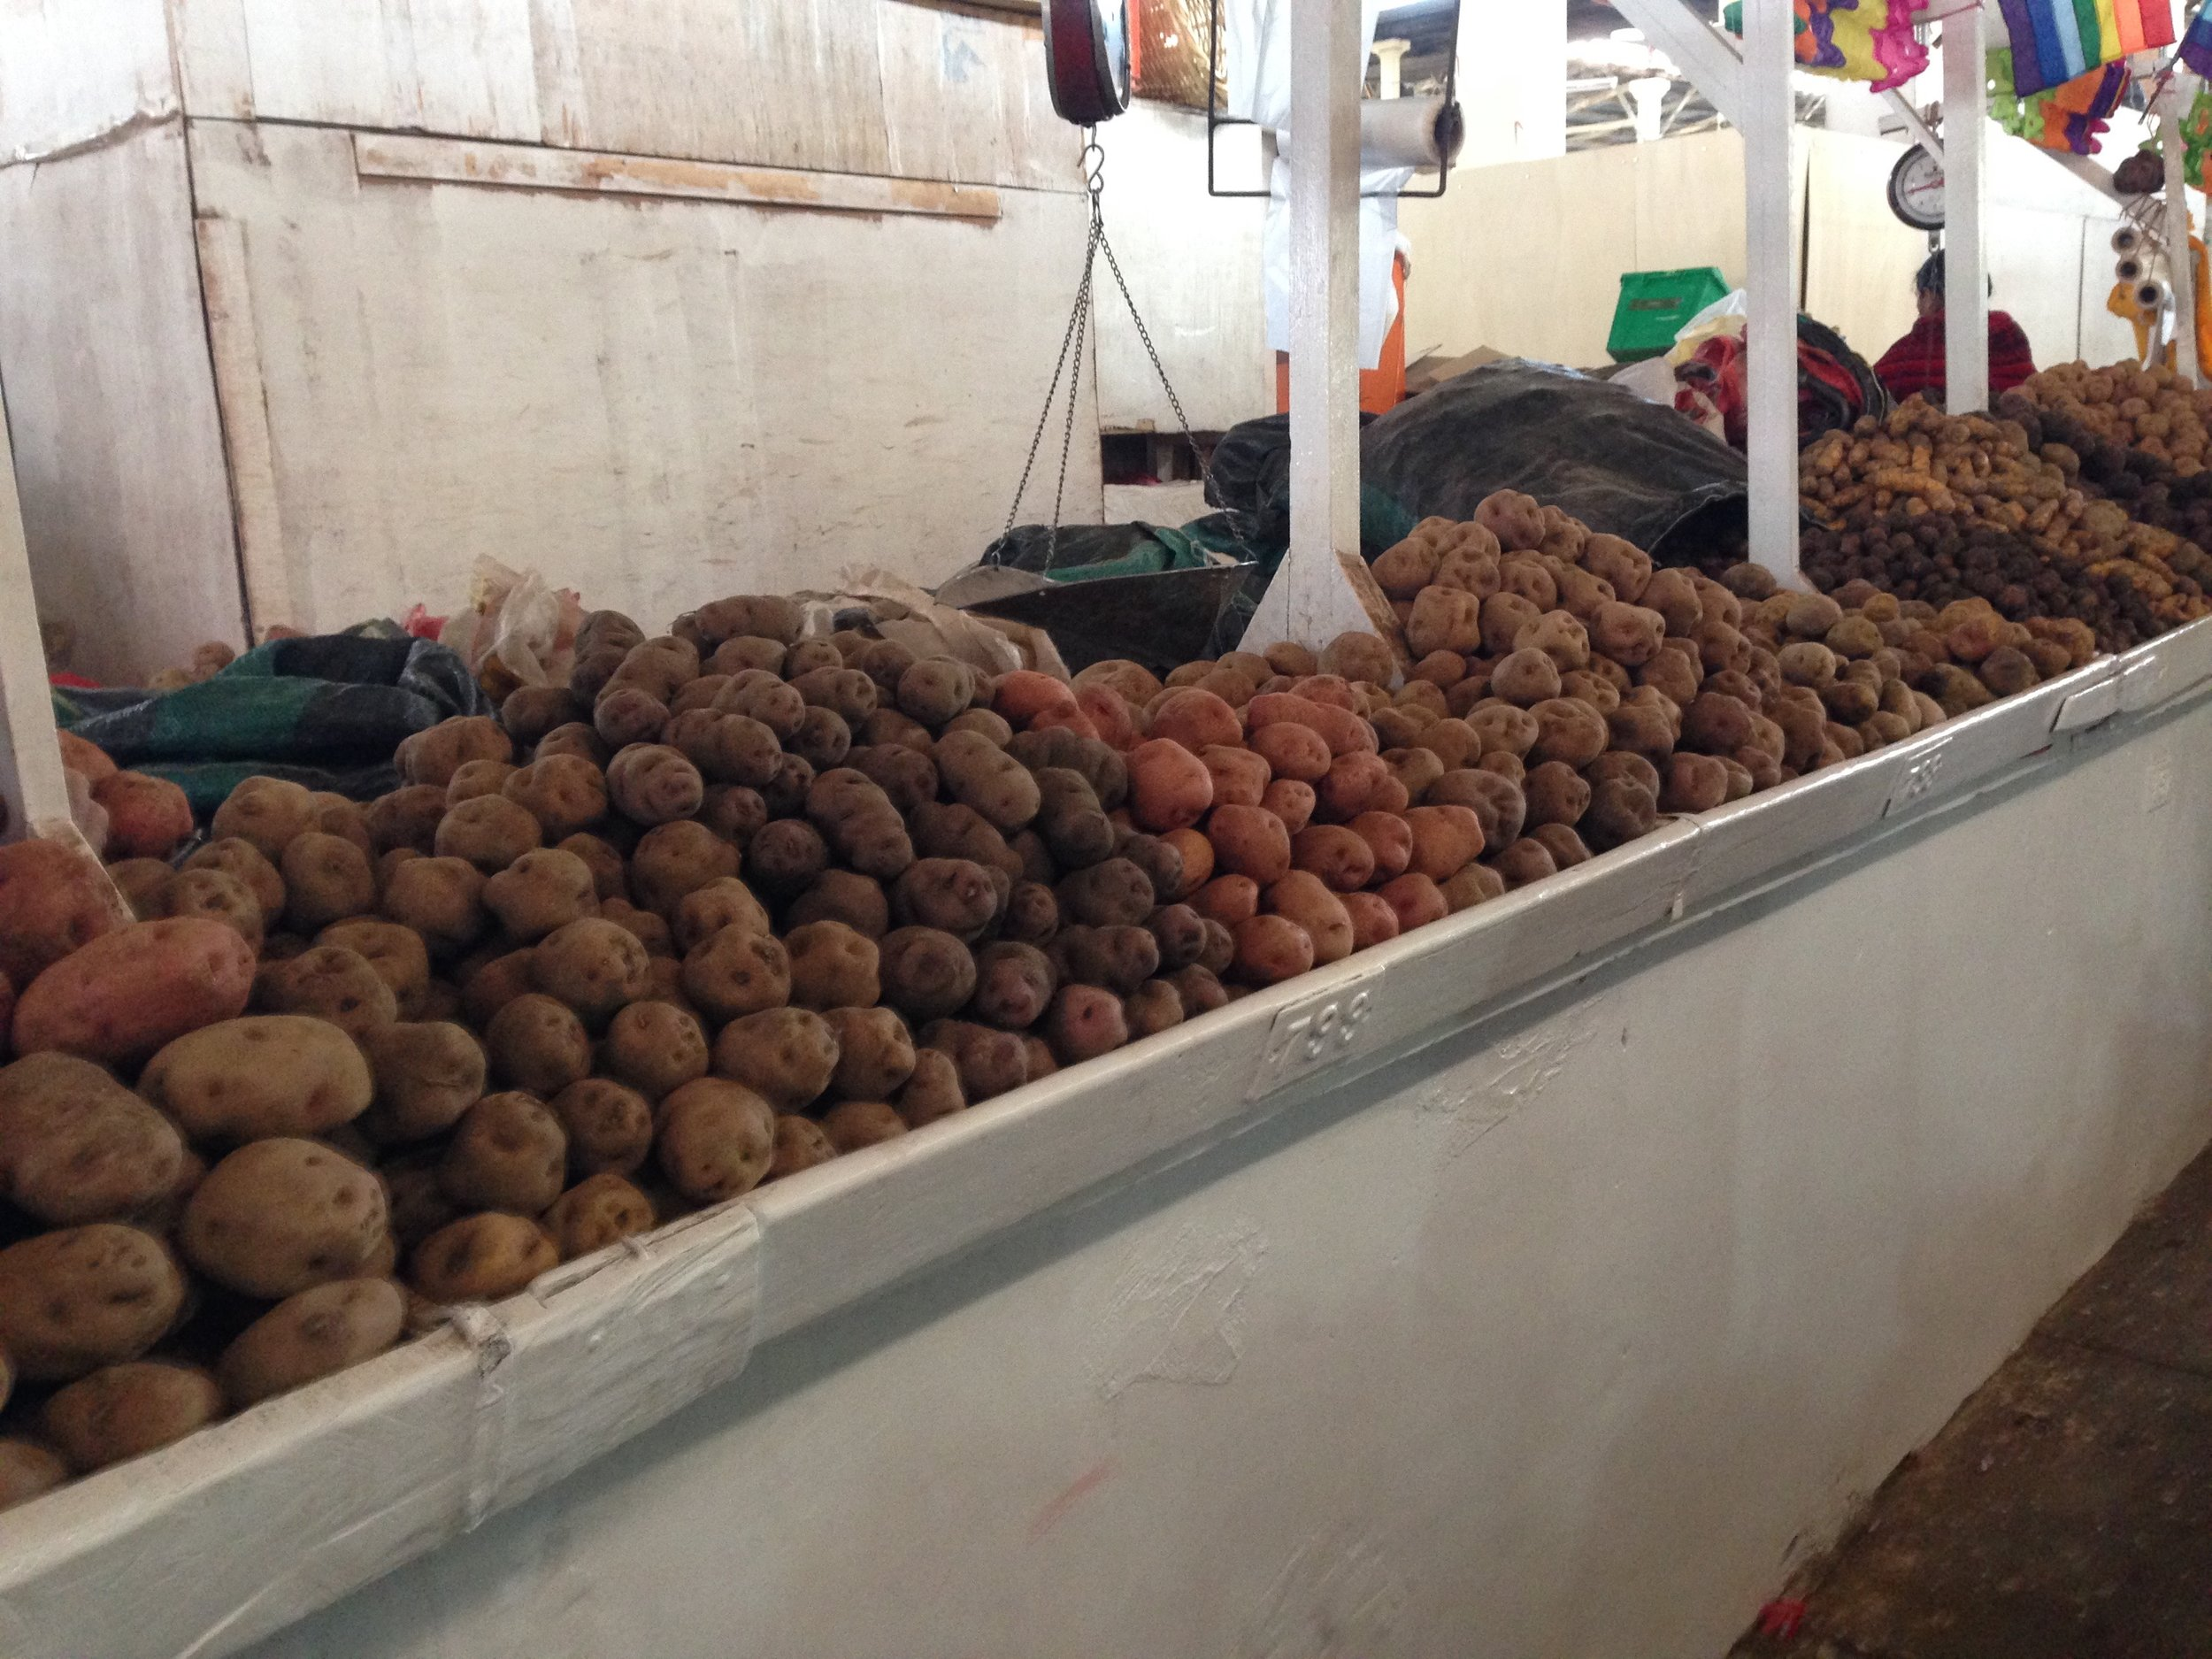 A few of the 3000 + varieties of potatoes - a staple of Peruvian cuisine